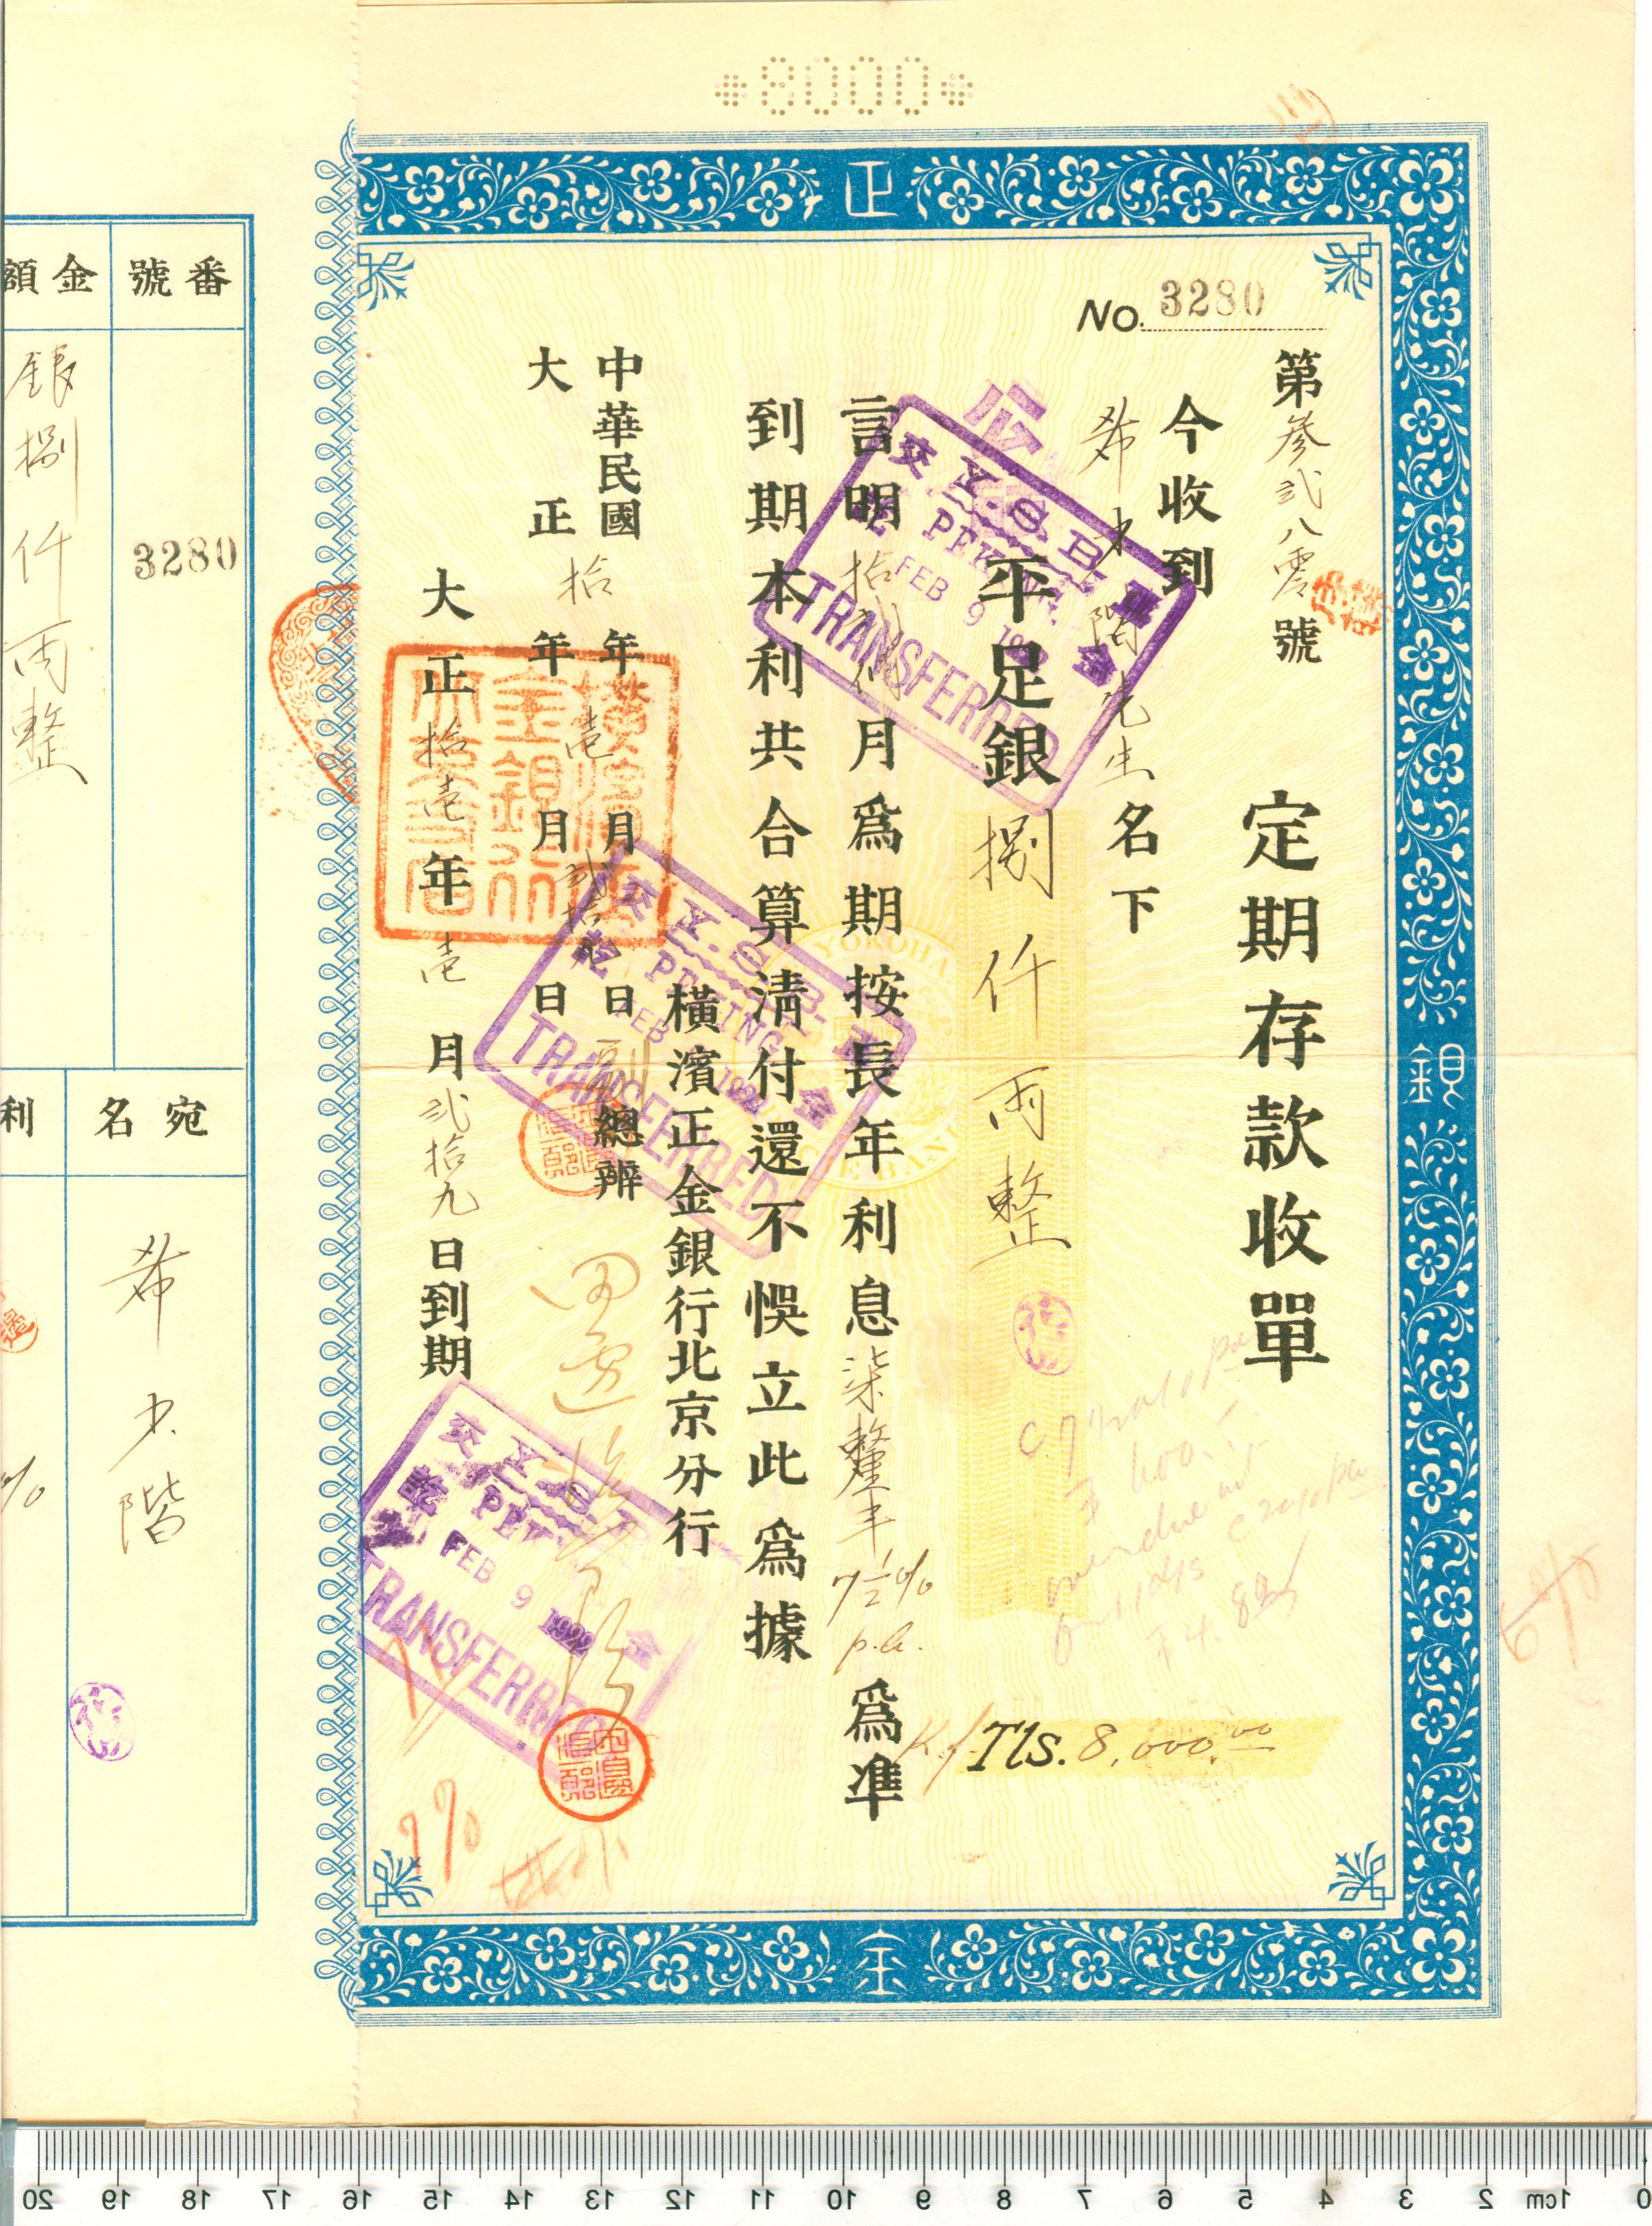 D3005, Fixed Deposit Receipt of Yokohama Special Bank, 1922 Beijing, China